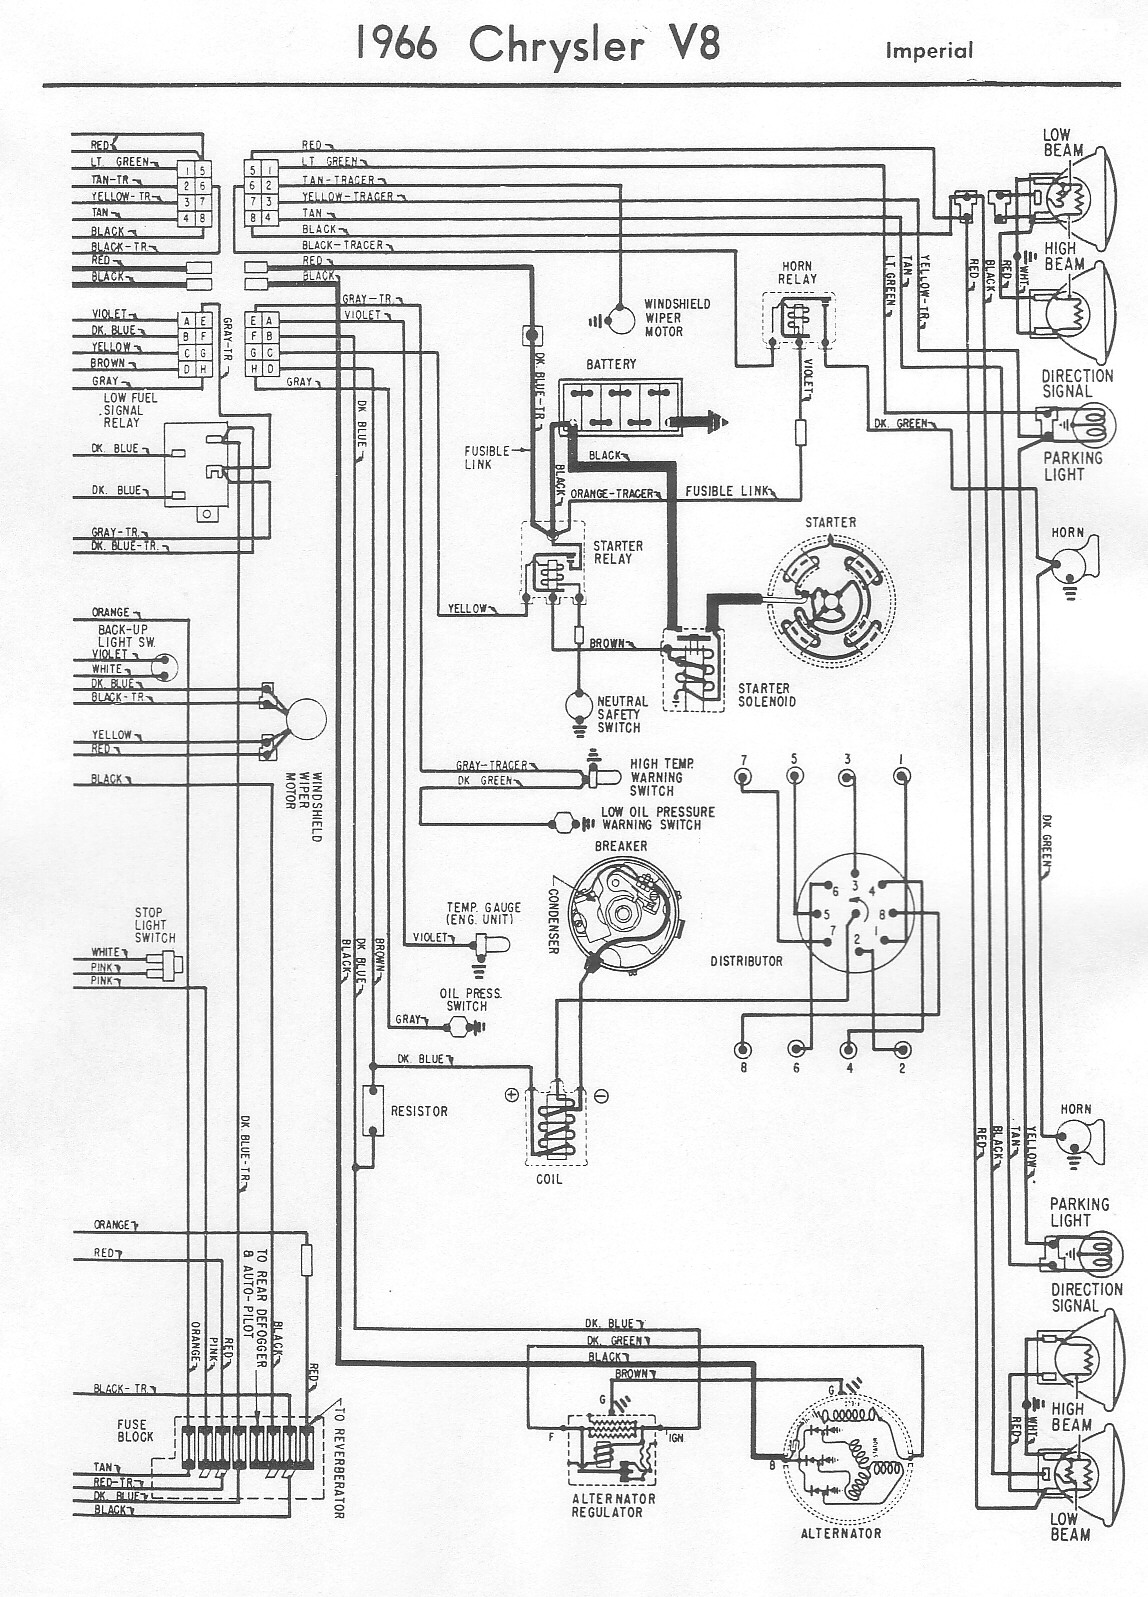 Alpine Mrp M500 Wiring Diagram 30 Images Pyle Stereo Free Download Schematic 1966 Chrysler Imperial October 2014 Circuit For Learning